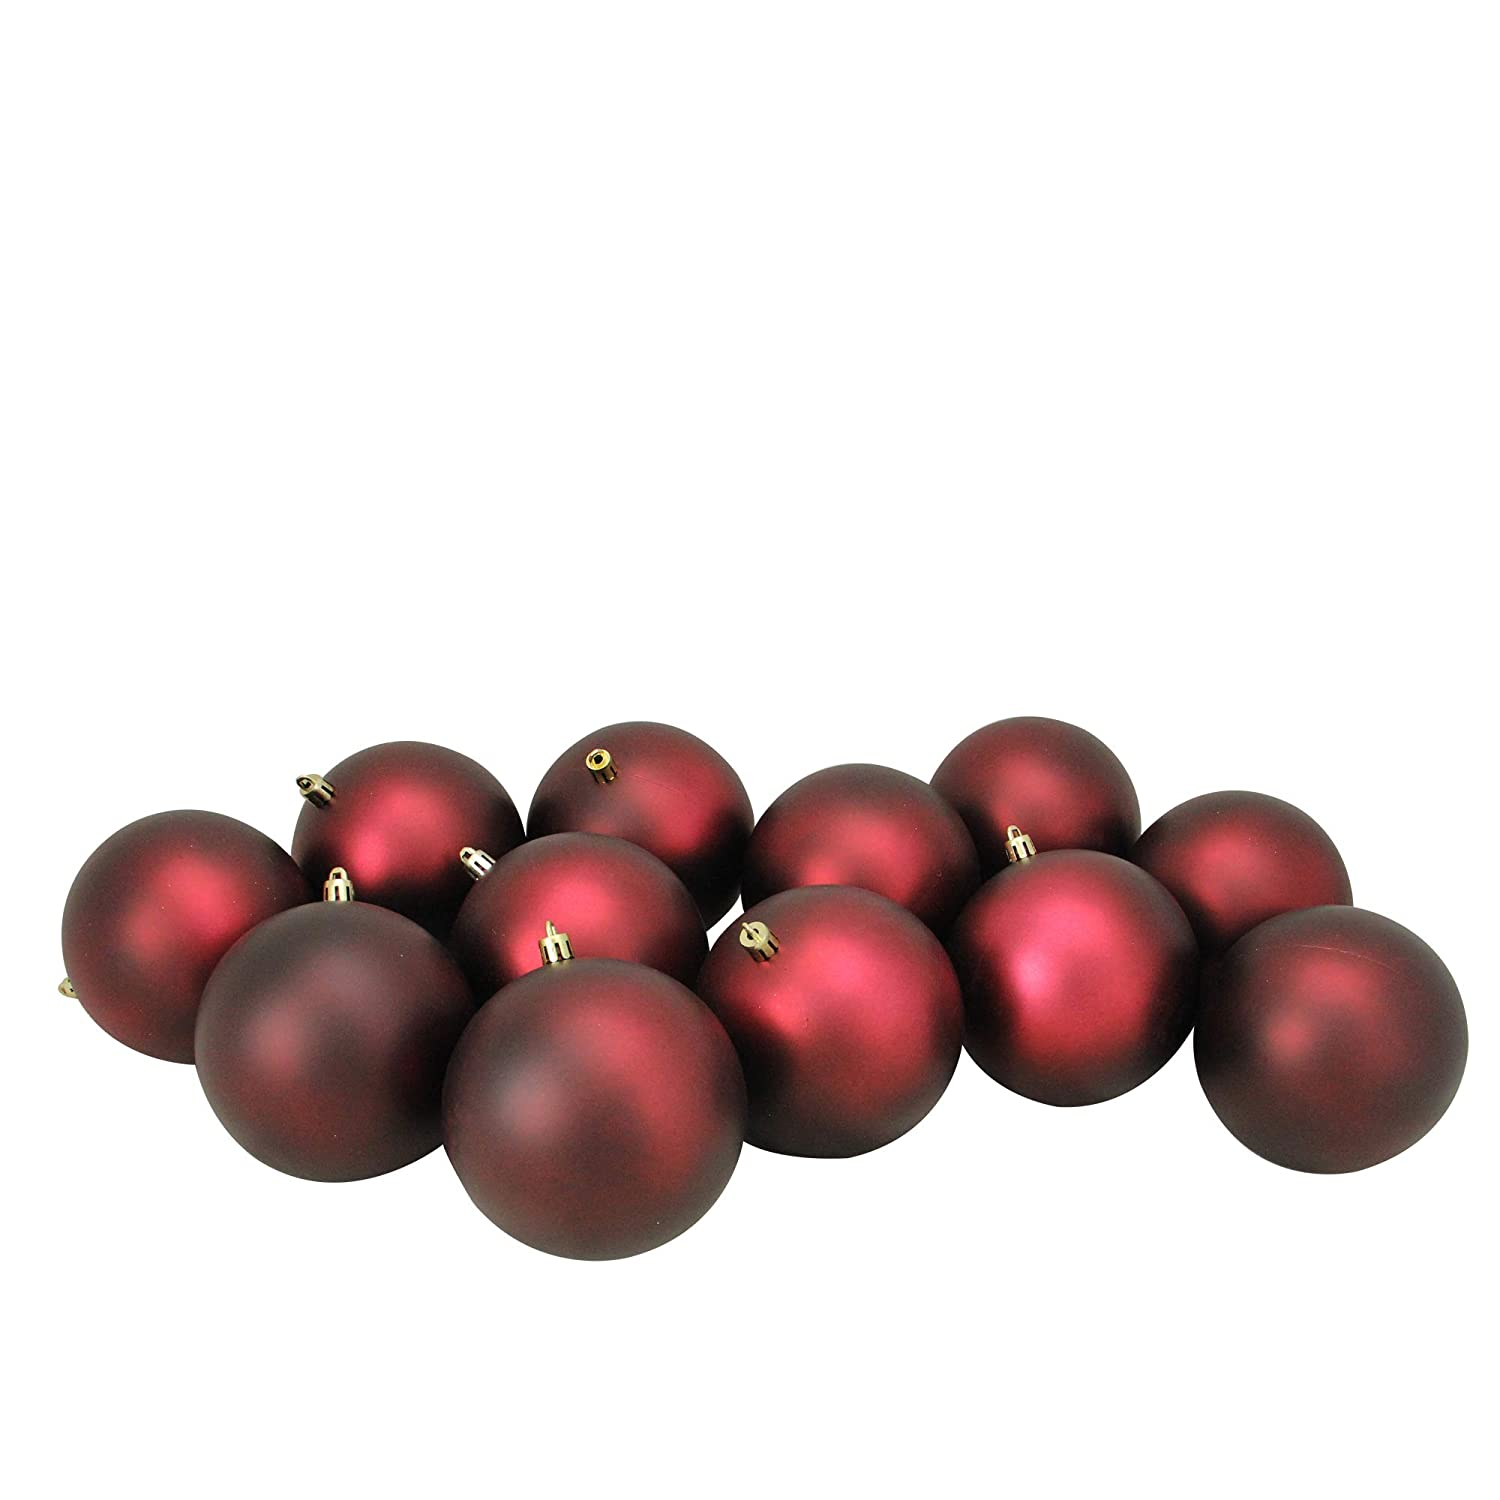 Red Christmas Ball Ornaments.12ct Matte Burgundy Red Shatterproof Christmas Ball Ornaments 4 100mm